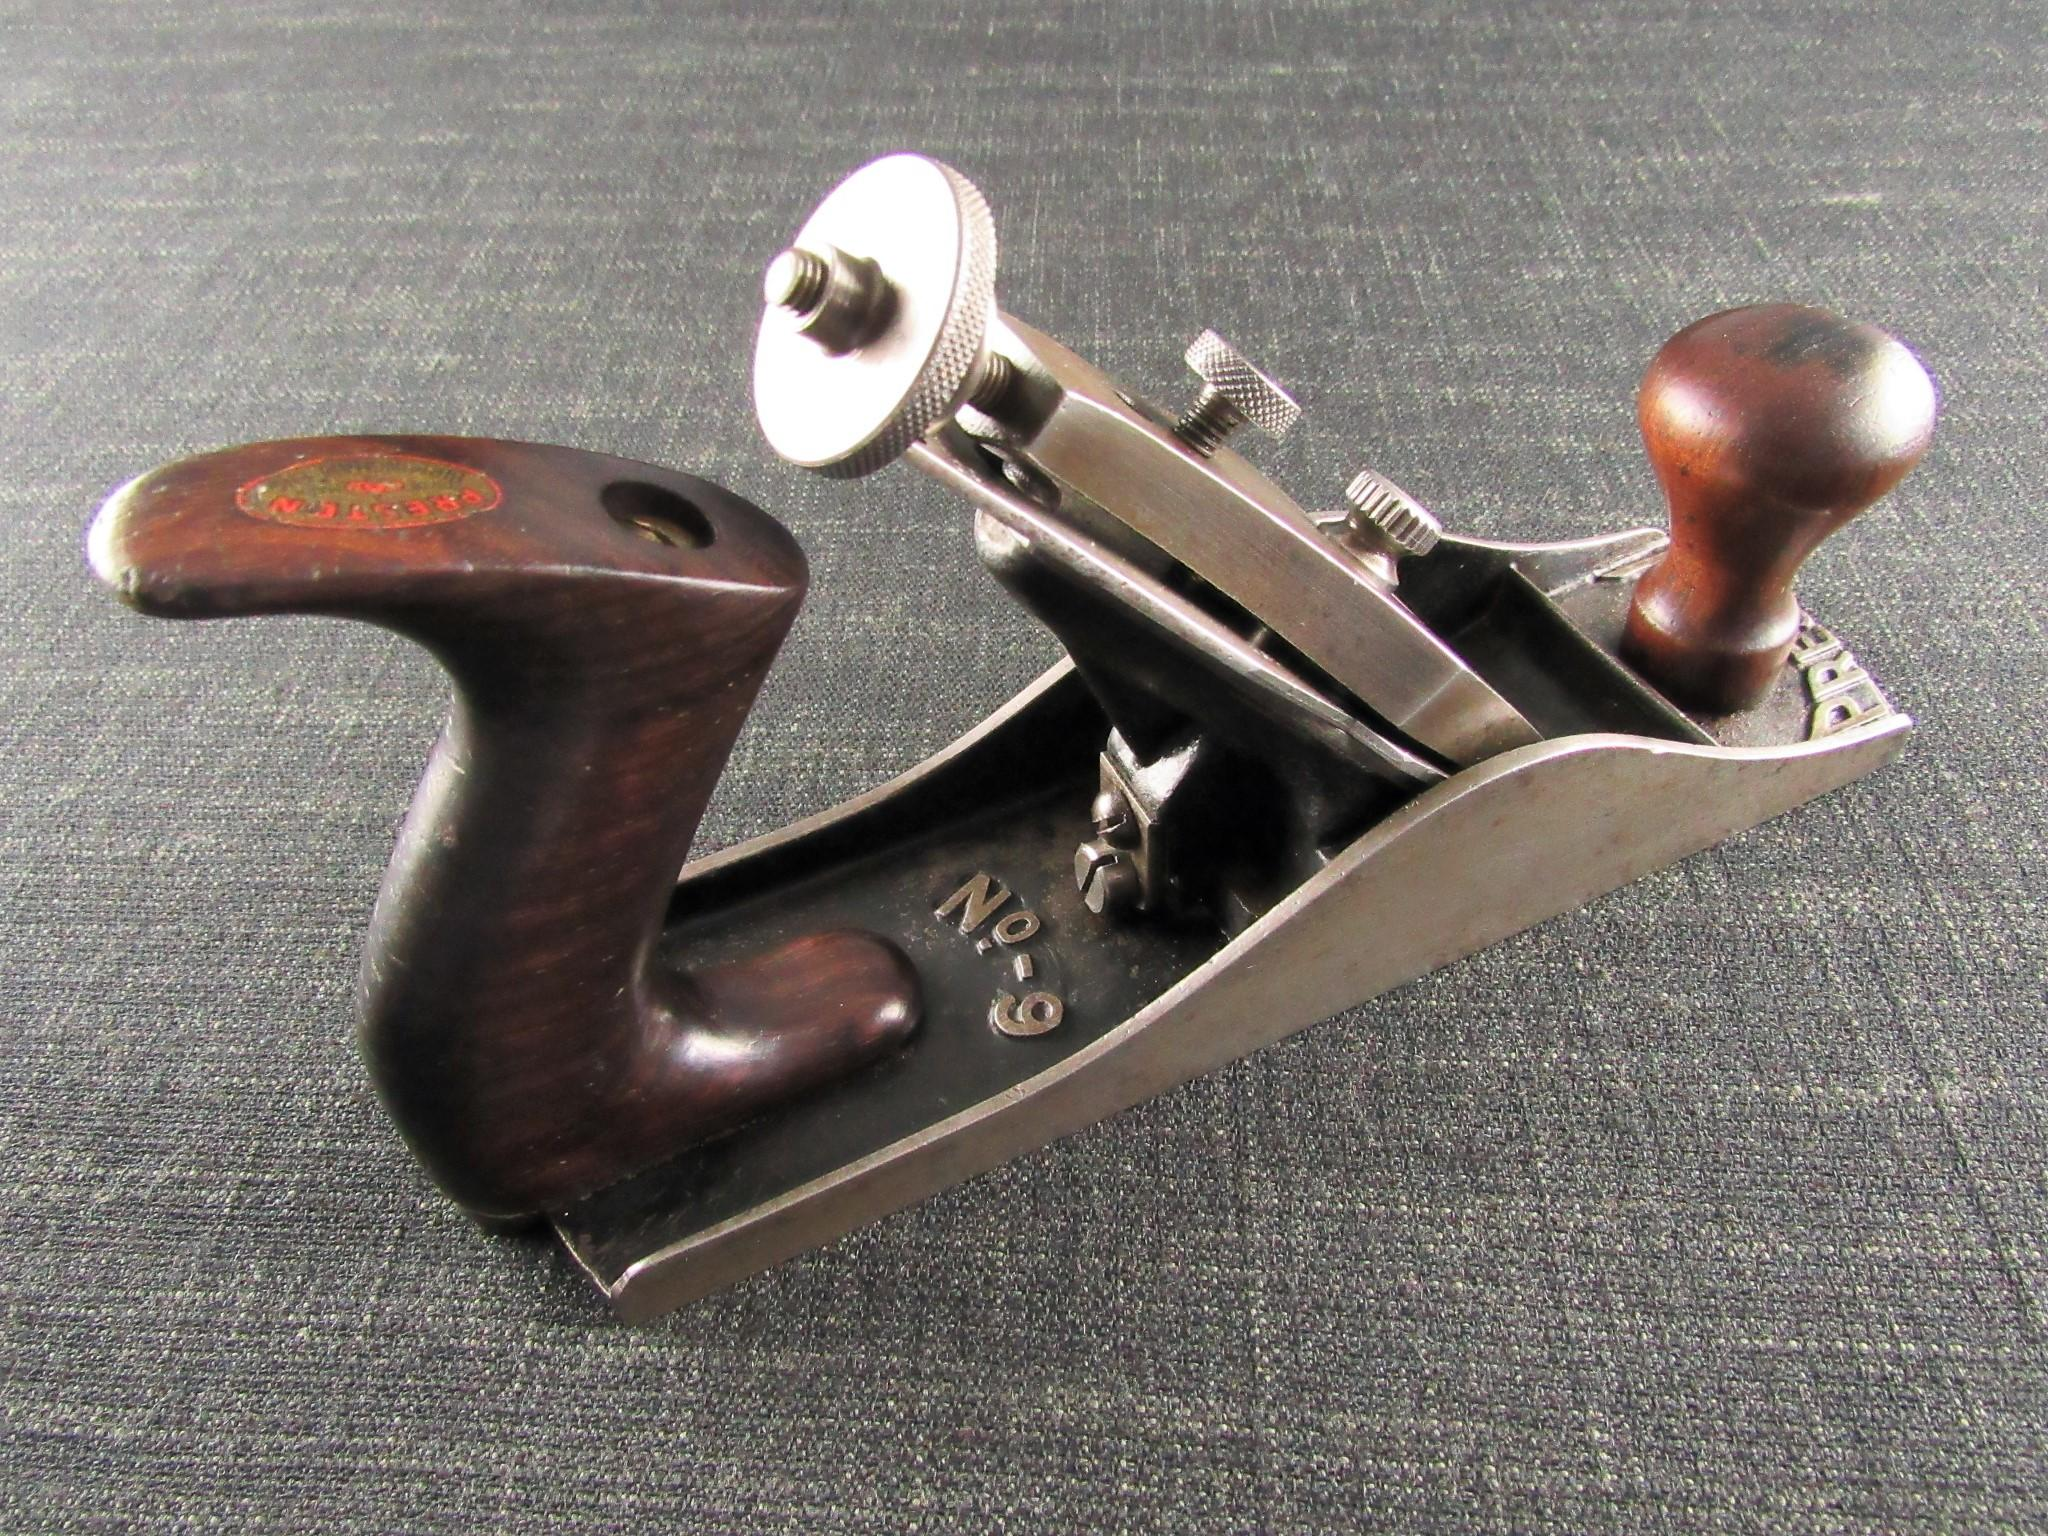 Scarce PRESTON No 9 Smoothing Plane